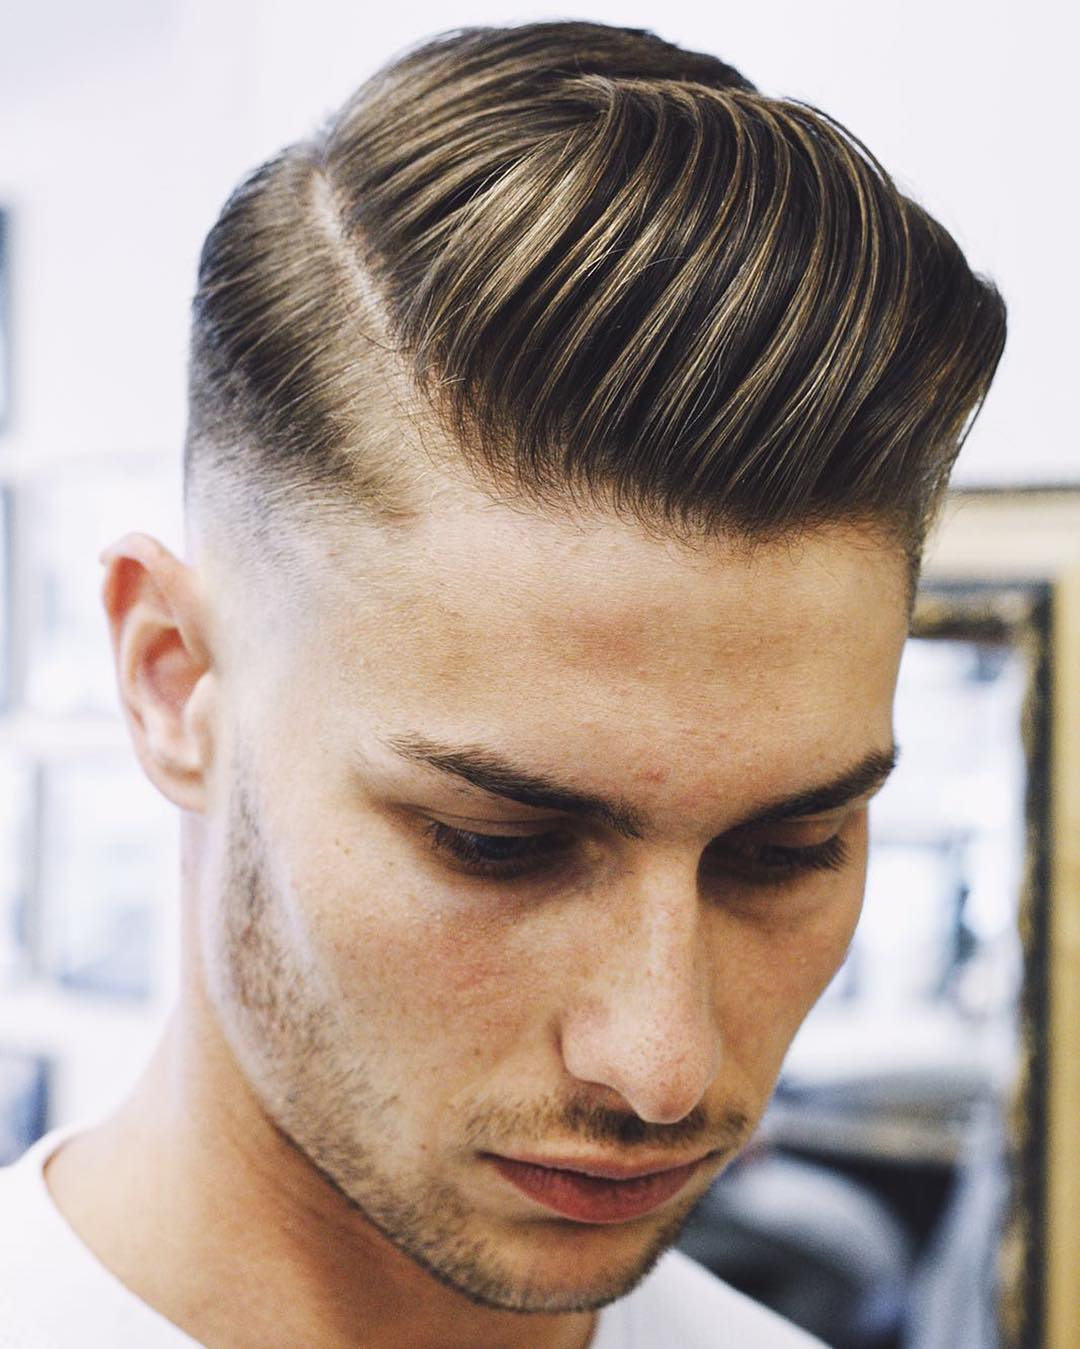 Top 100 Men's Haircuts + Cool Hairstyles For Men (July 2018 Update)